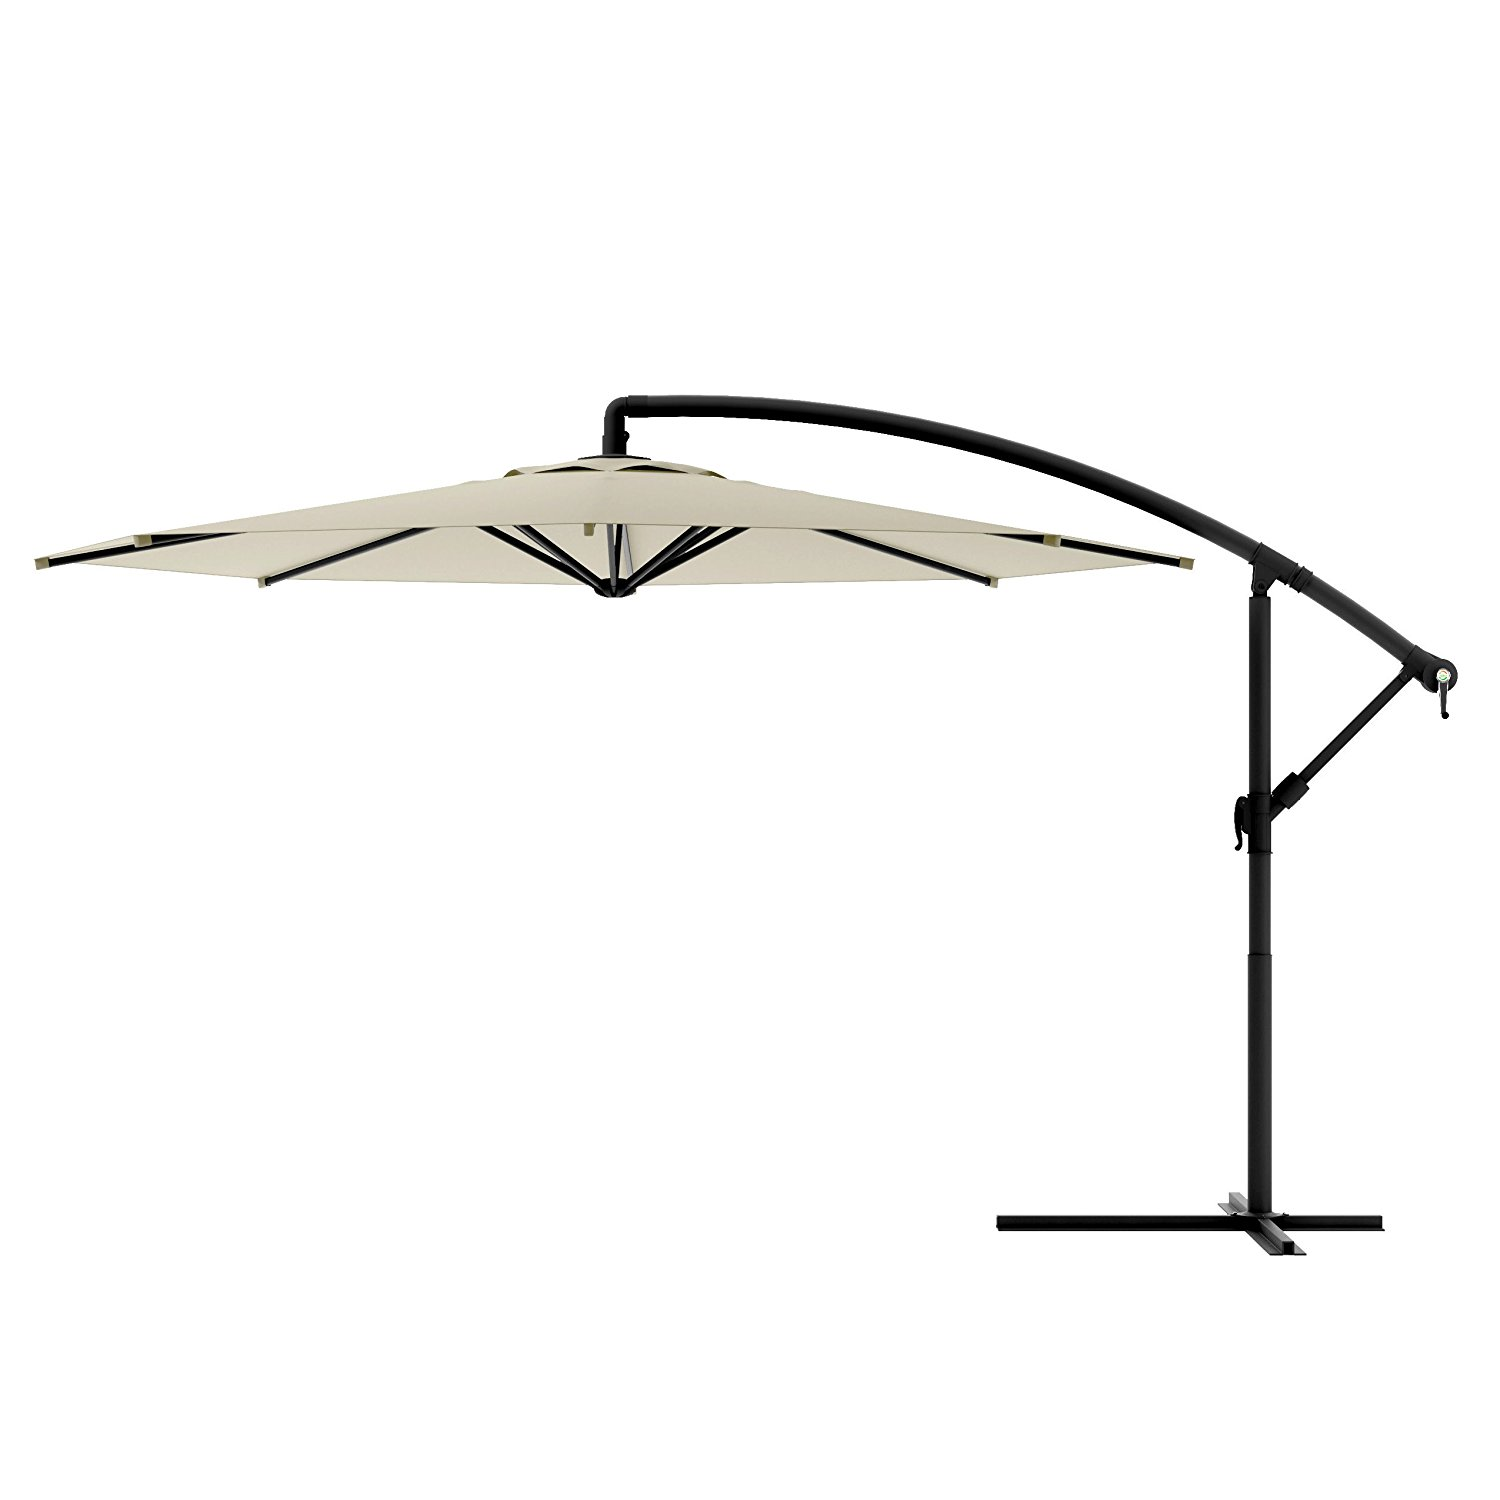 Offset-Umbrella Large Outdoor Adjustable Parasol W/Cantilever Base Stand - Best Sun Uv Protection For Garden, Patio, Lawn, Beach, Backyard, Pool. Solar Cover, Big Shade.10ft (Warm White)